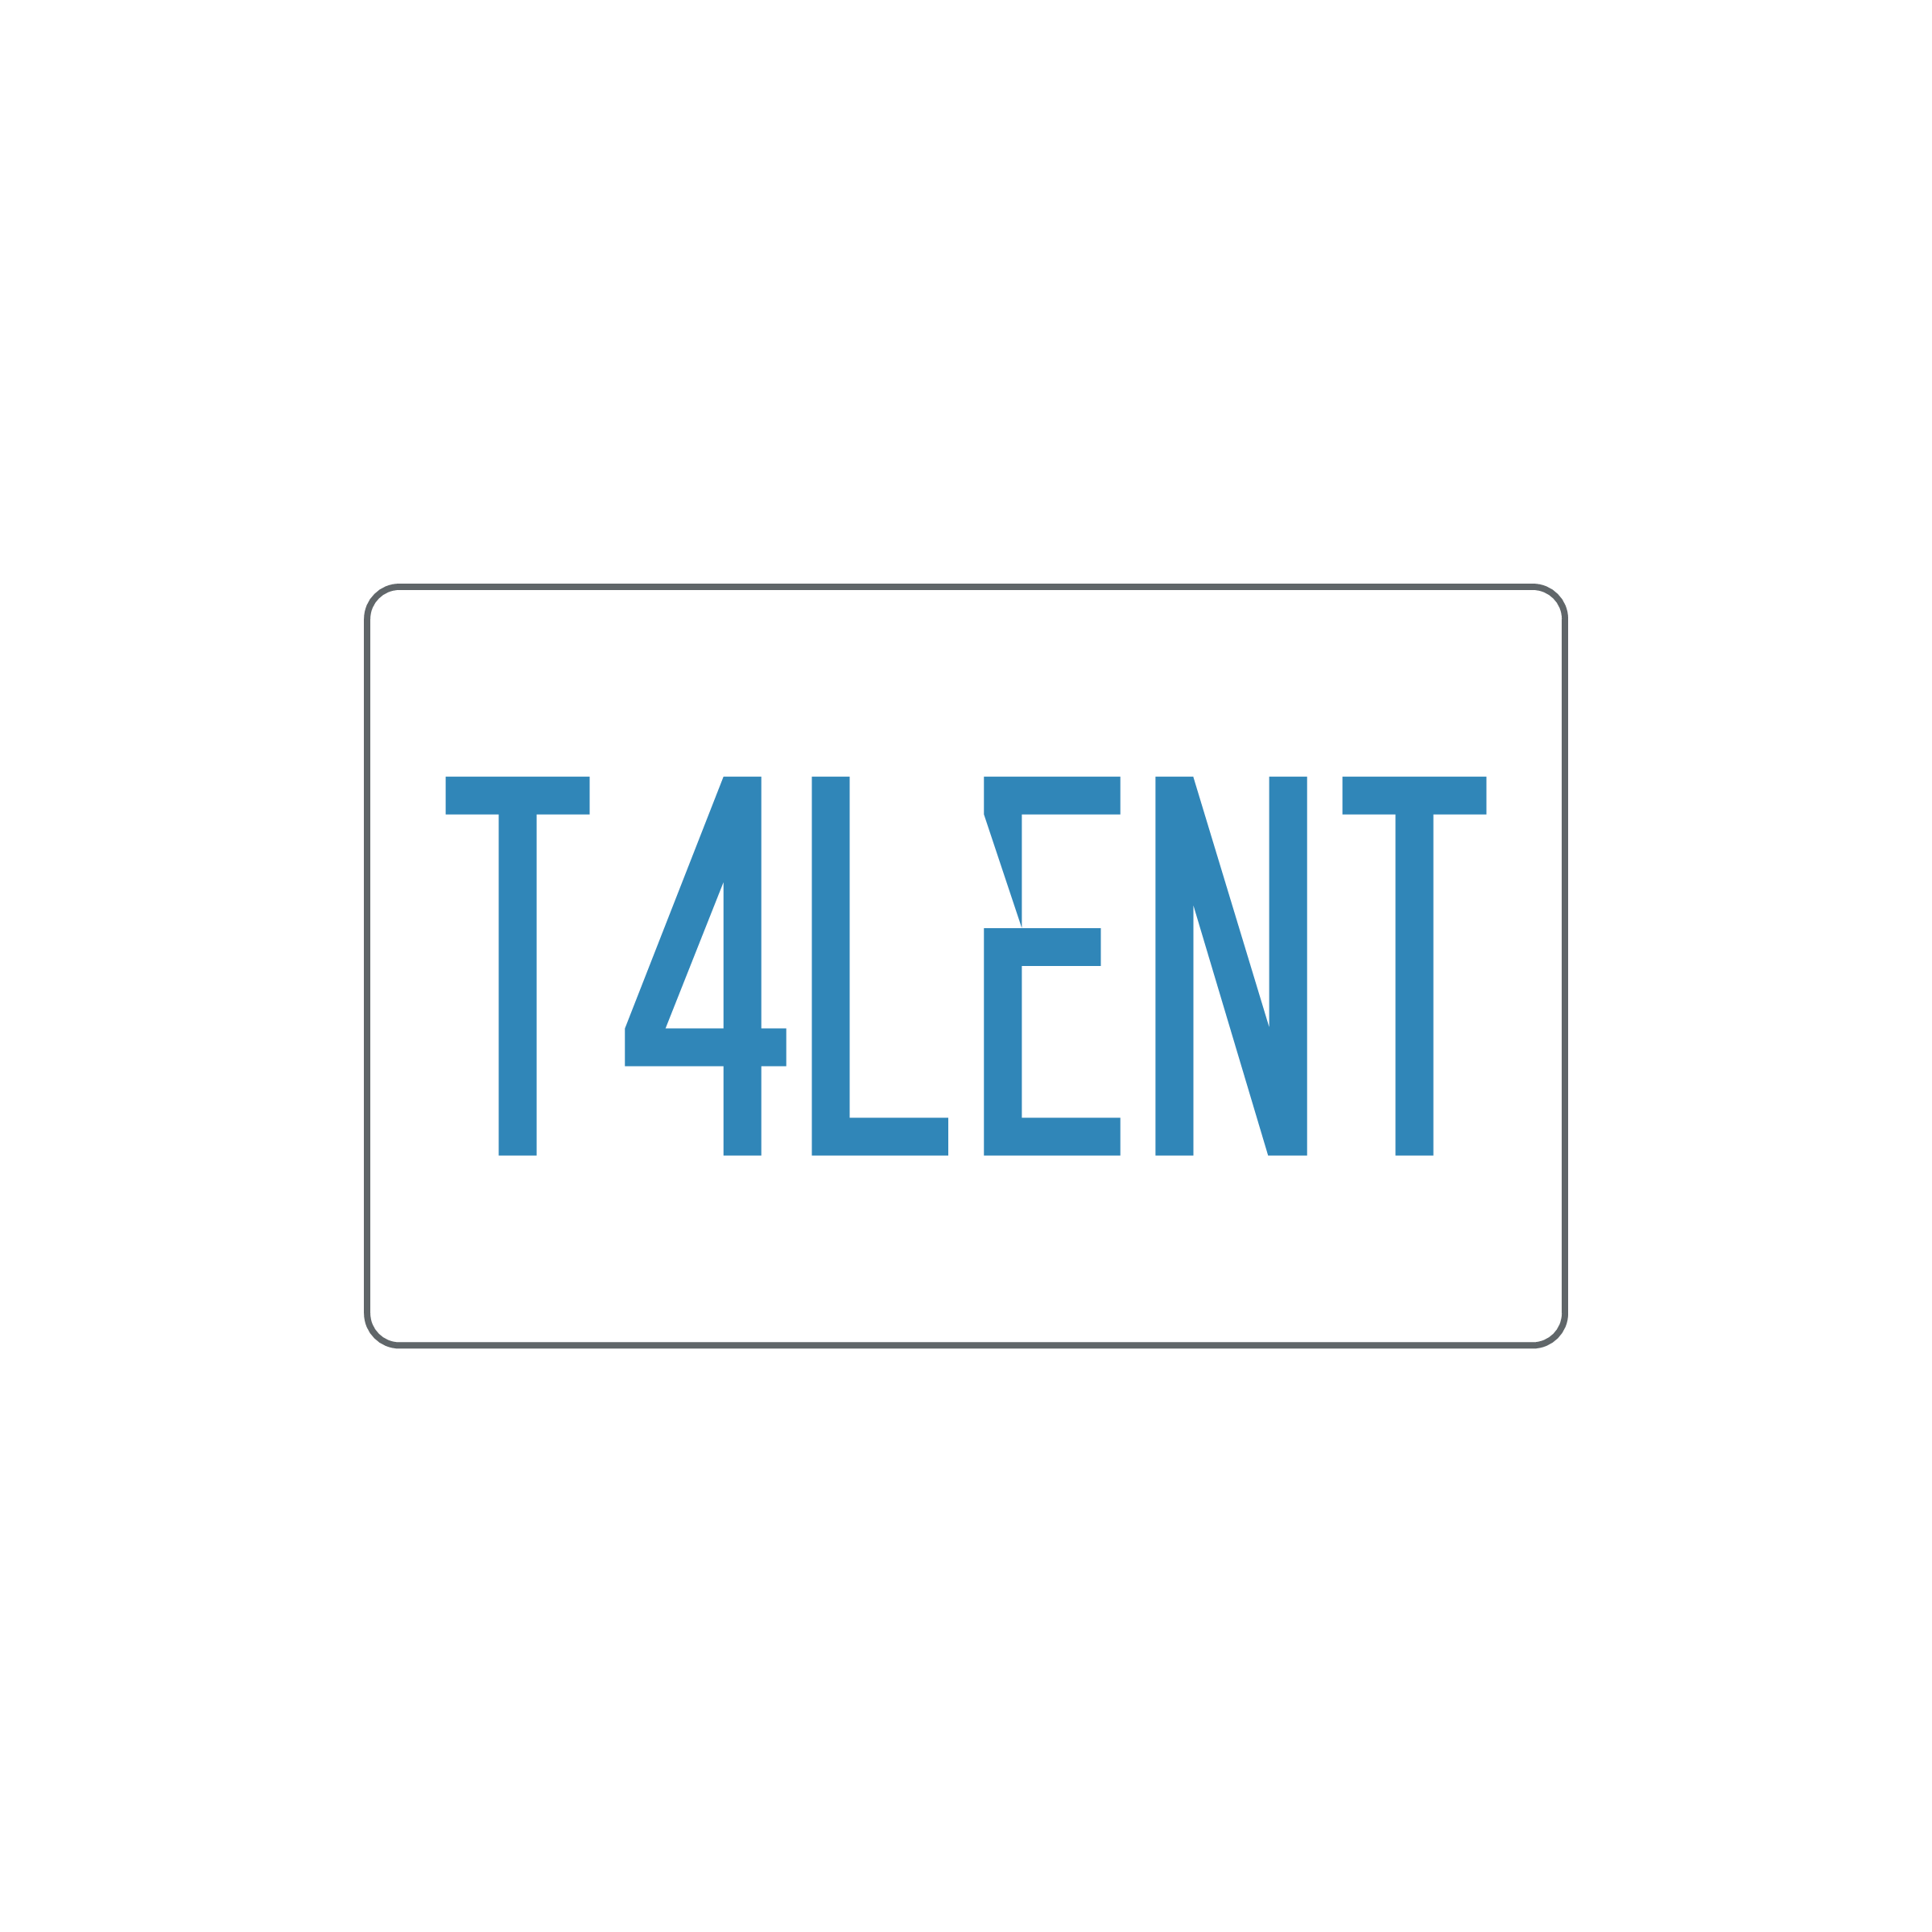 Logo of the project Talent 4.0